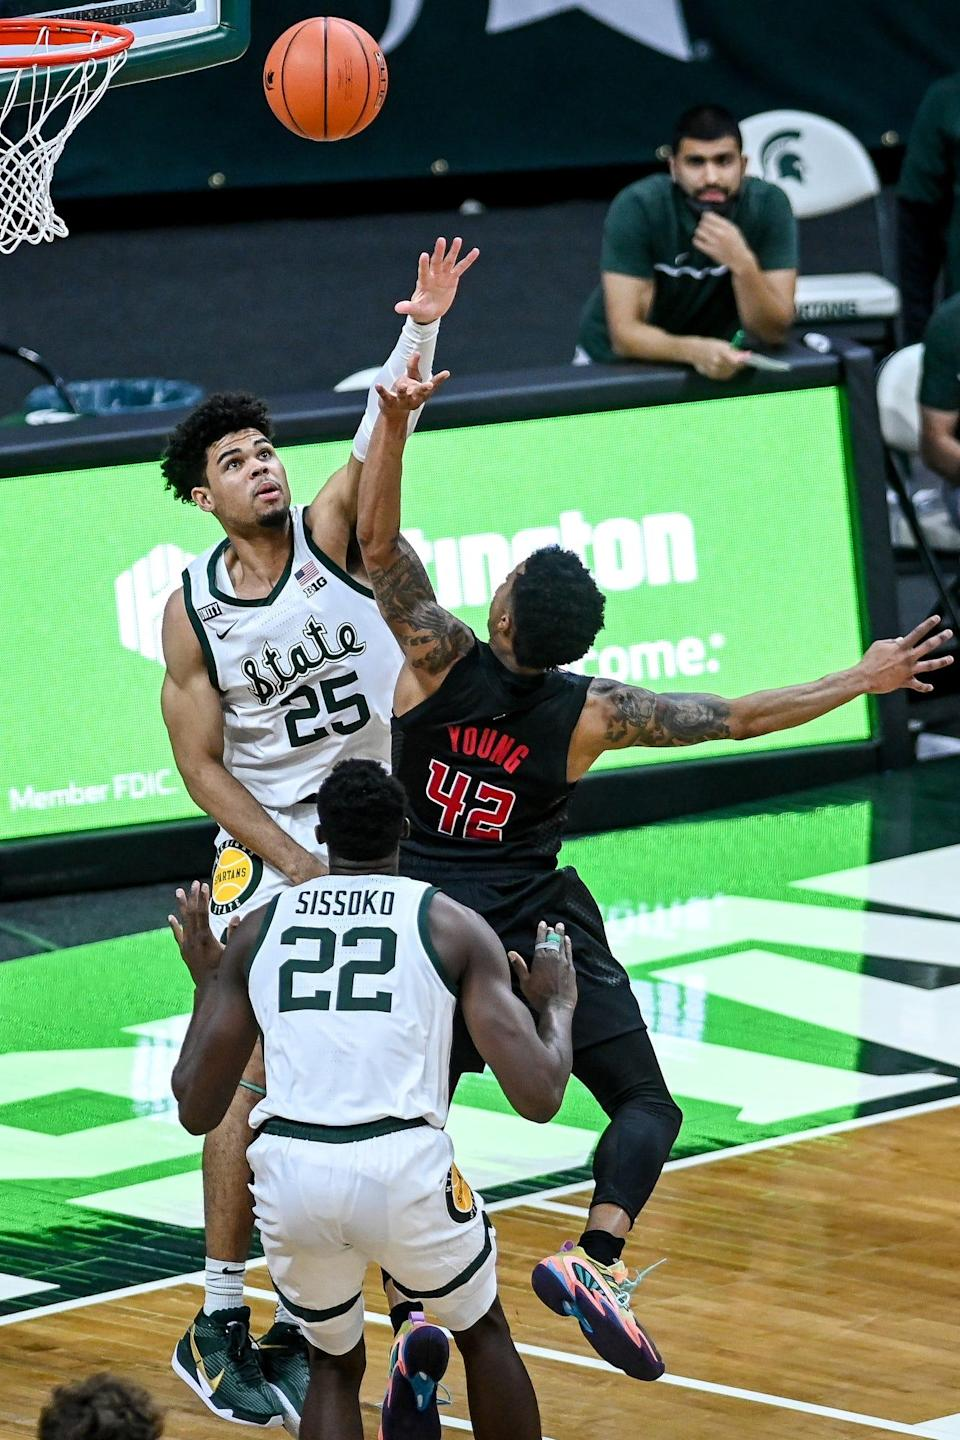 Michigan State's Malik Hall, left, pressures Rutgers' Jacob Young during the first half on Tuesday, Jan. 5, 2021, at the Breslin Center in East Lansing.